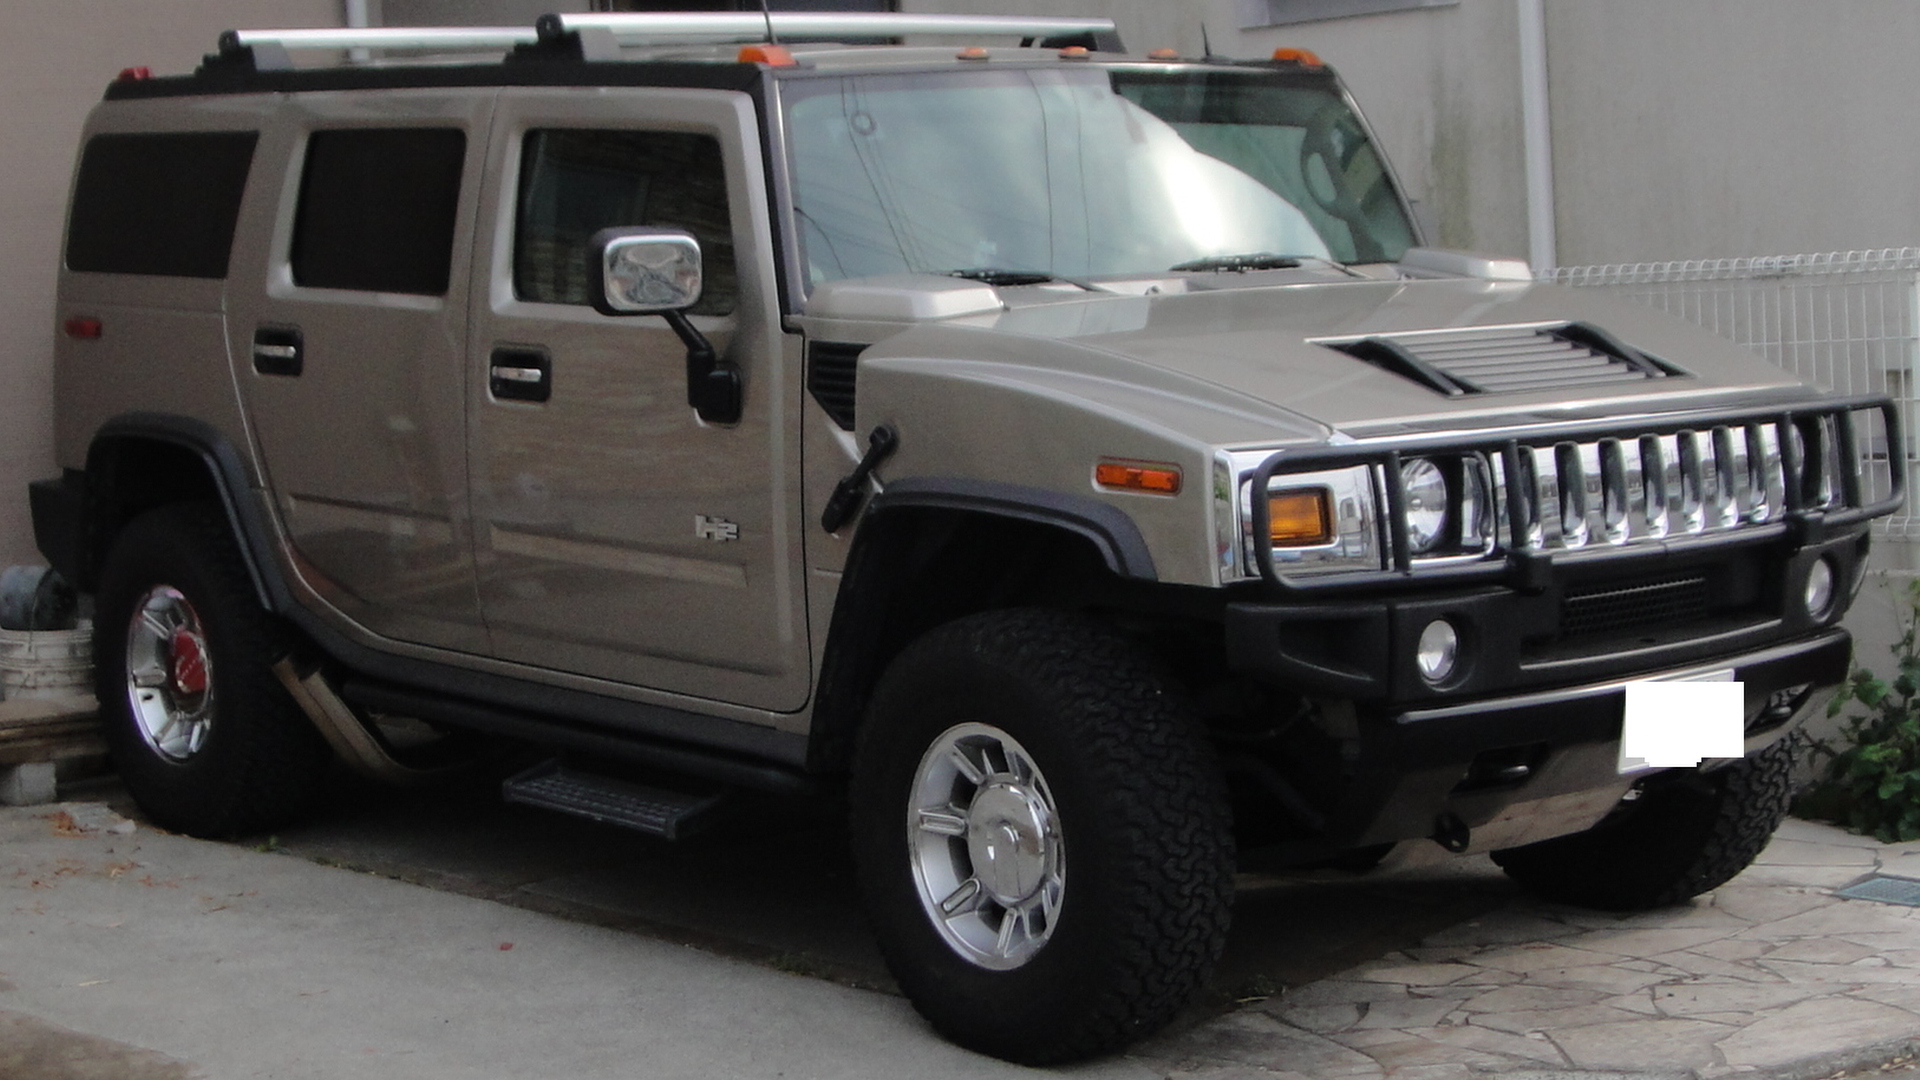 Exotic Hummer H2 on Military Use